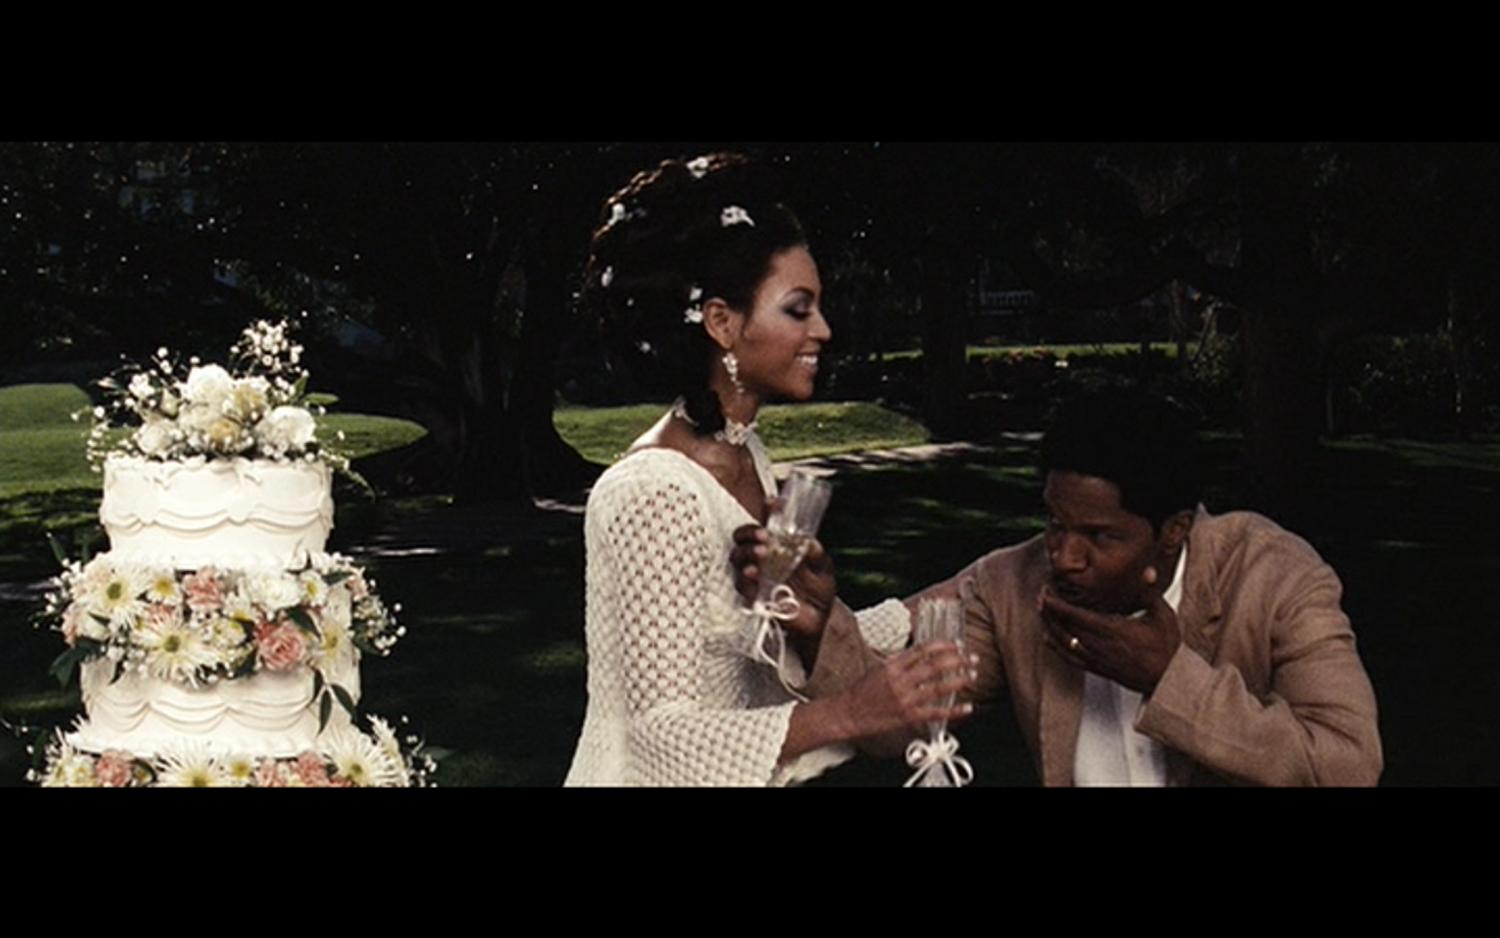 DREAMGIRLS – Deena Jones (Beyonce) crochet wedding dress